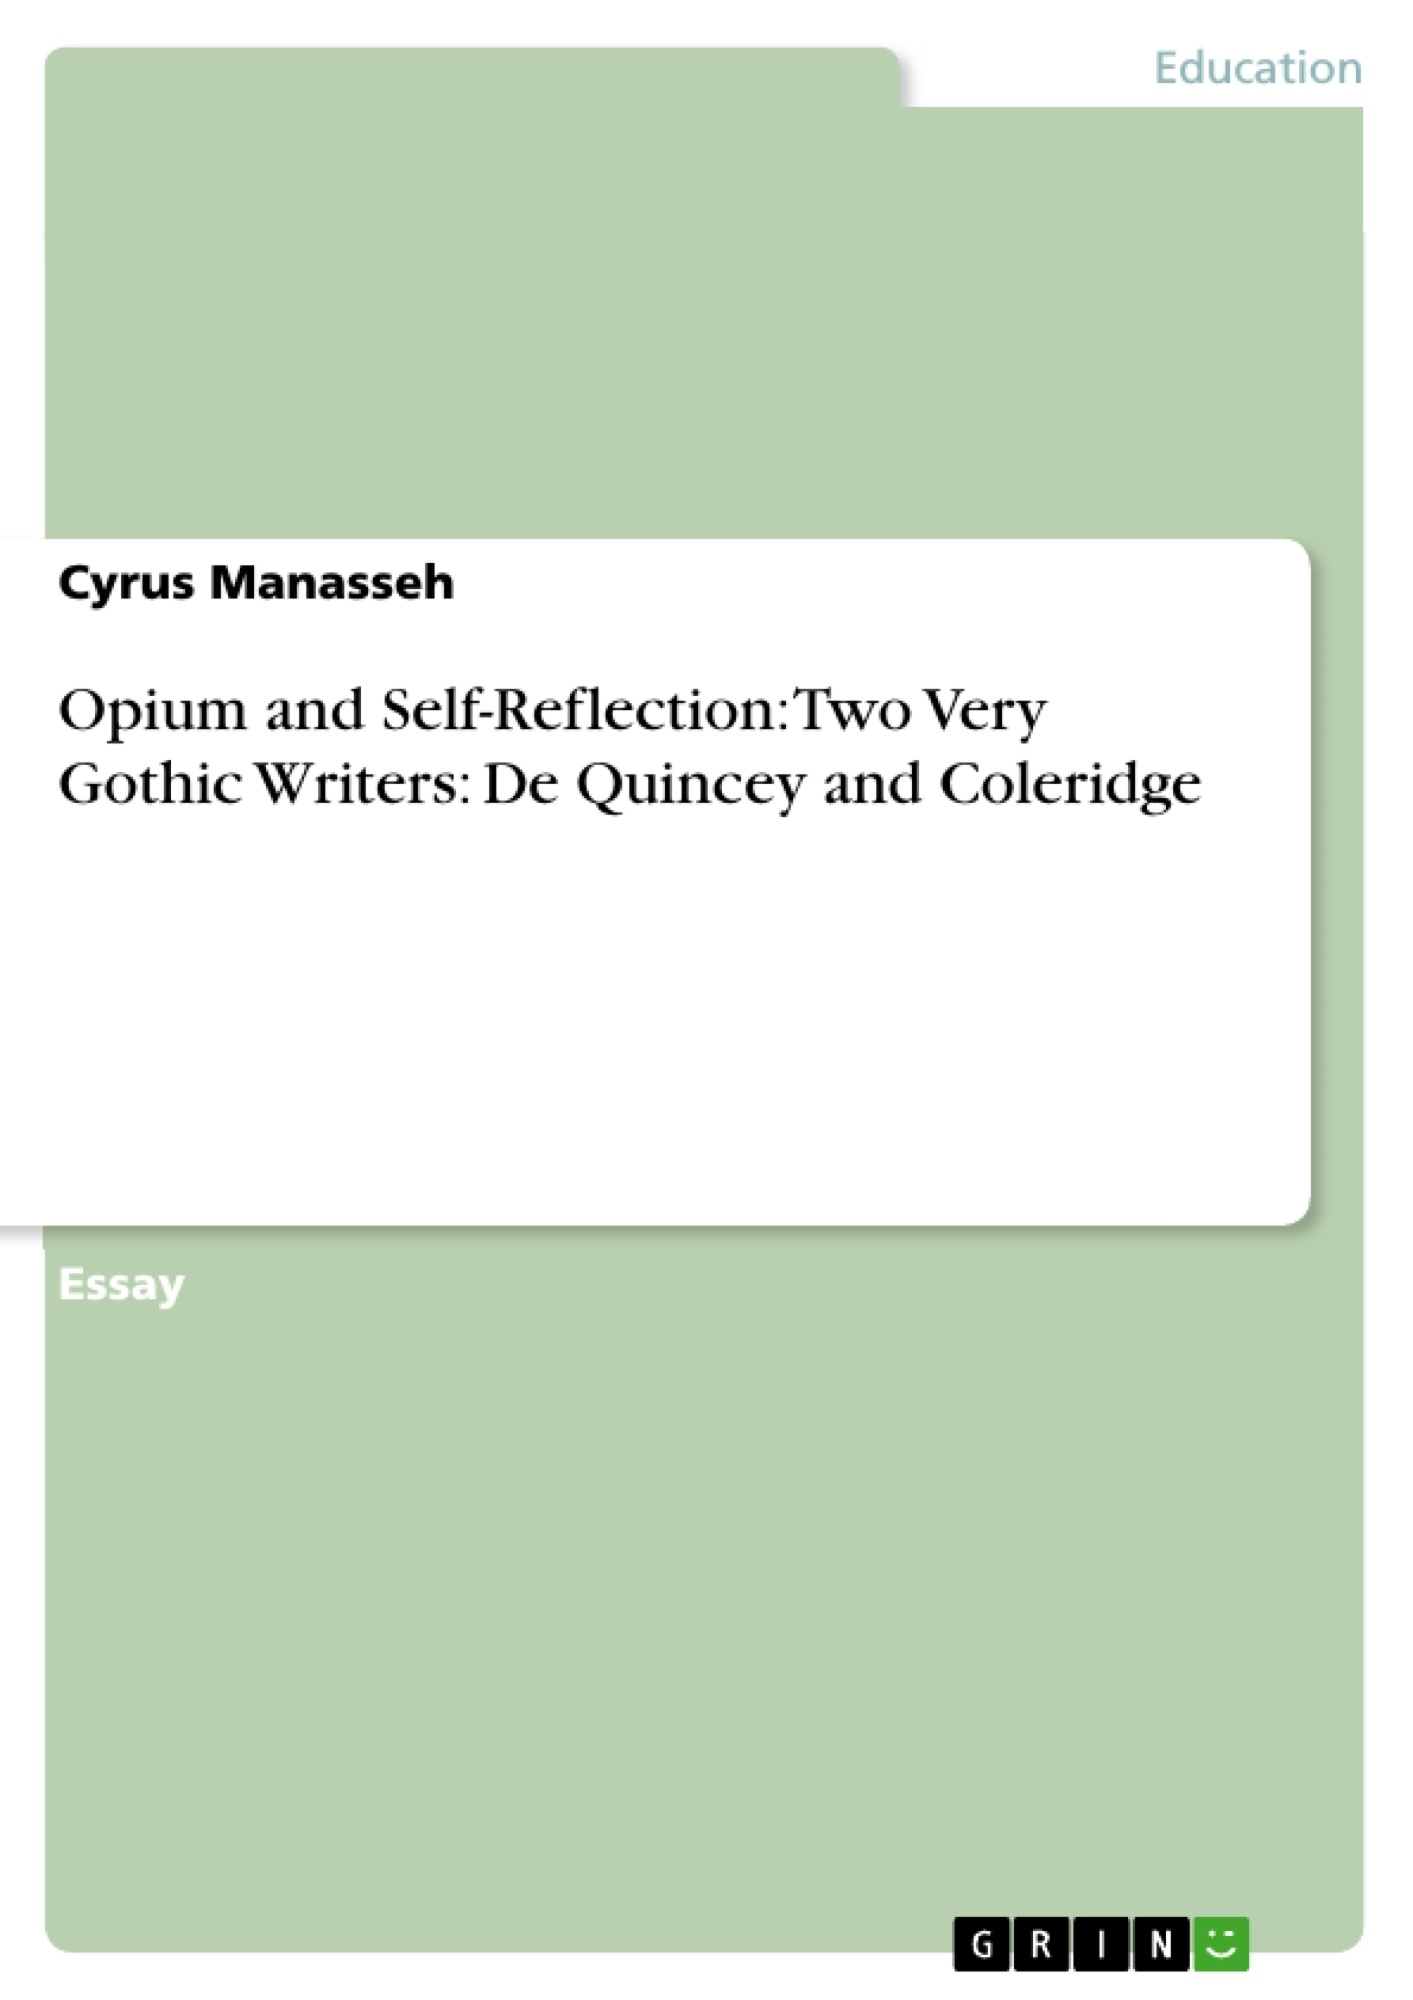 Title: Opium and Self-Reflection: Two Very Gothic Writers: De Quincey and Coleridge